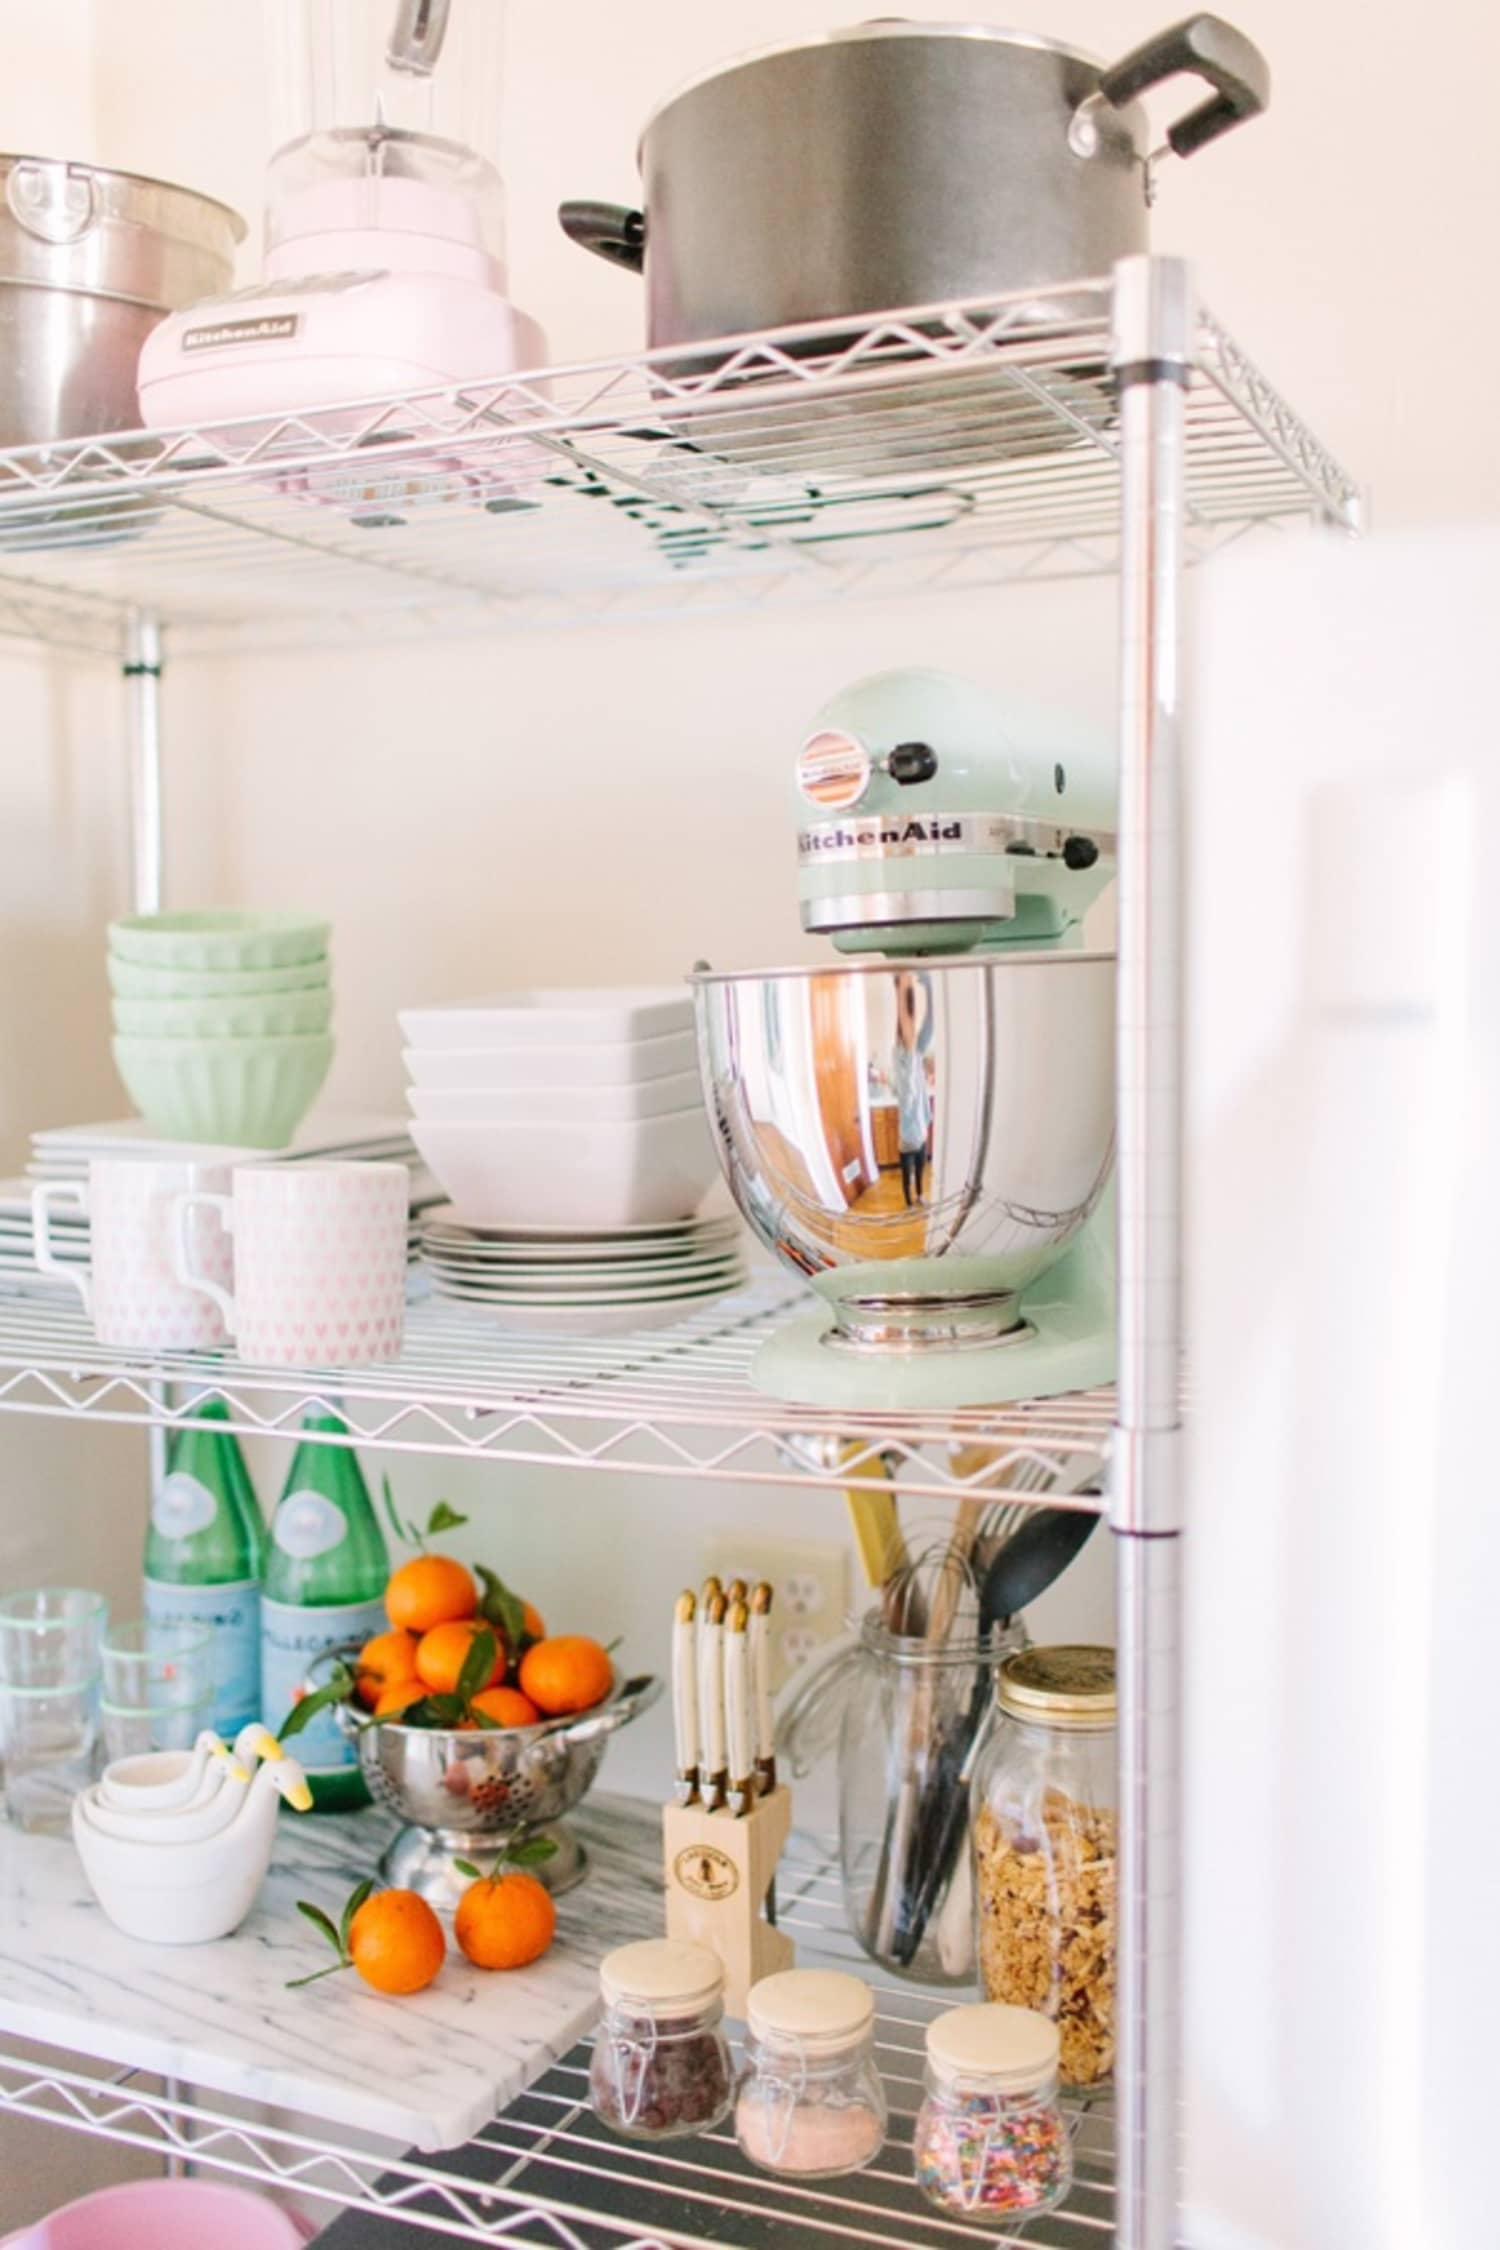 5 Things To Ask Yourself Before Buying A Kitchenaid Stand